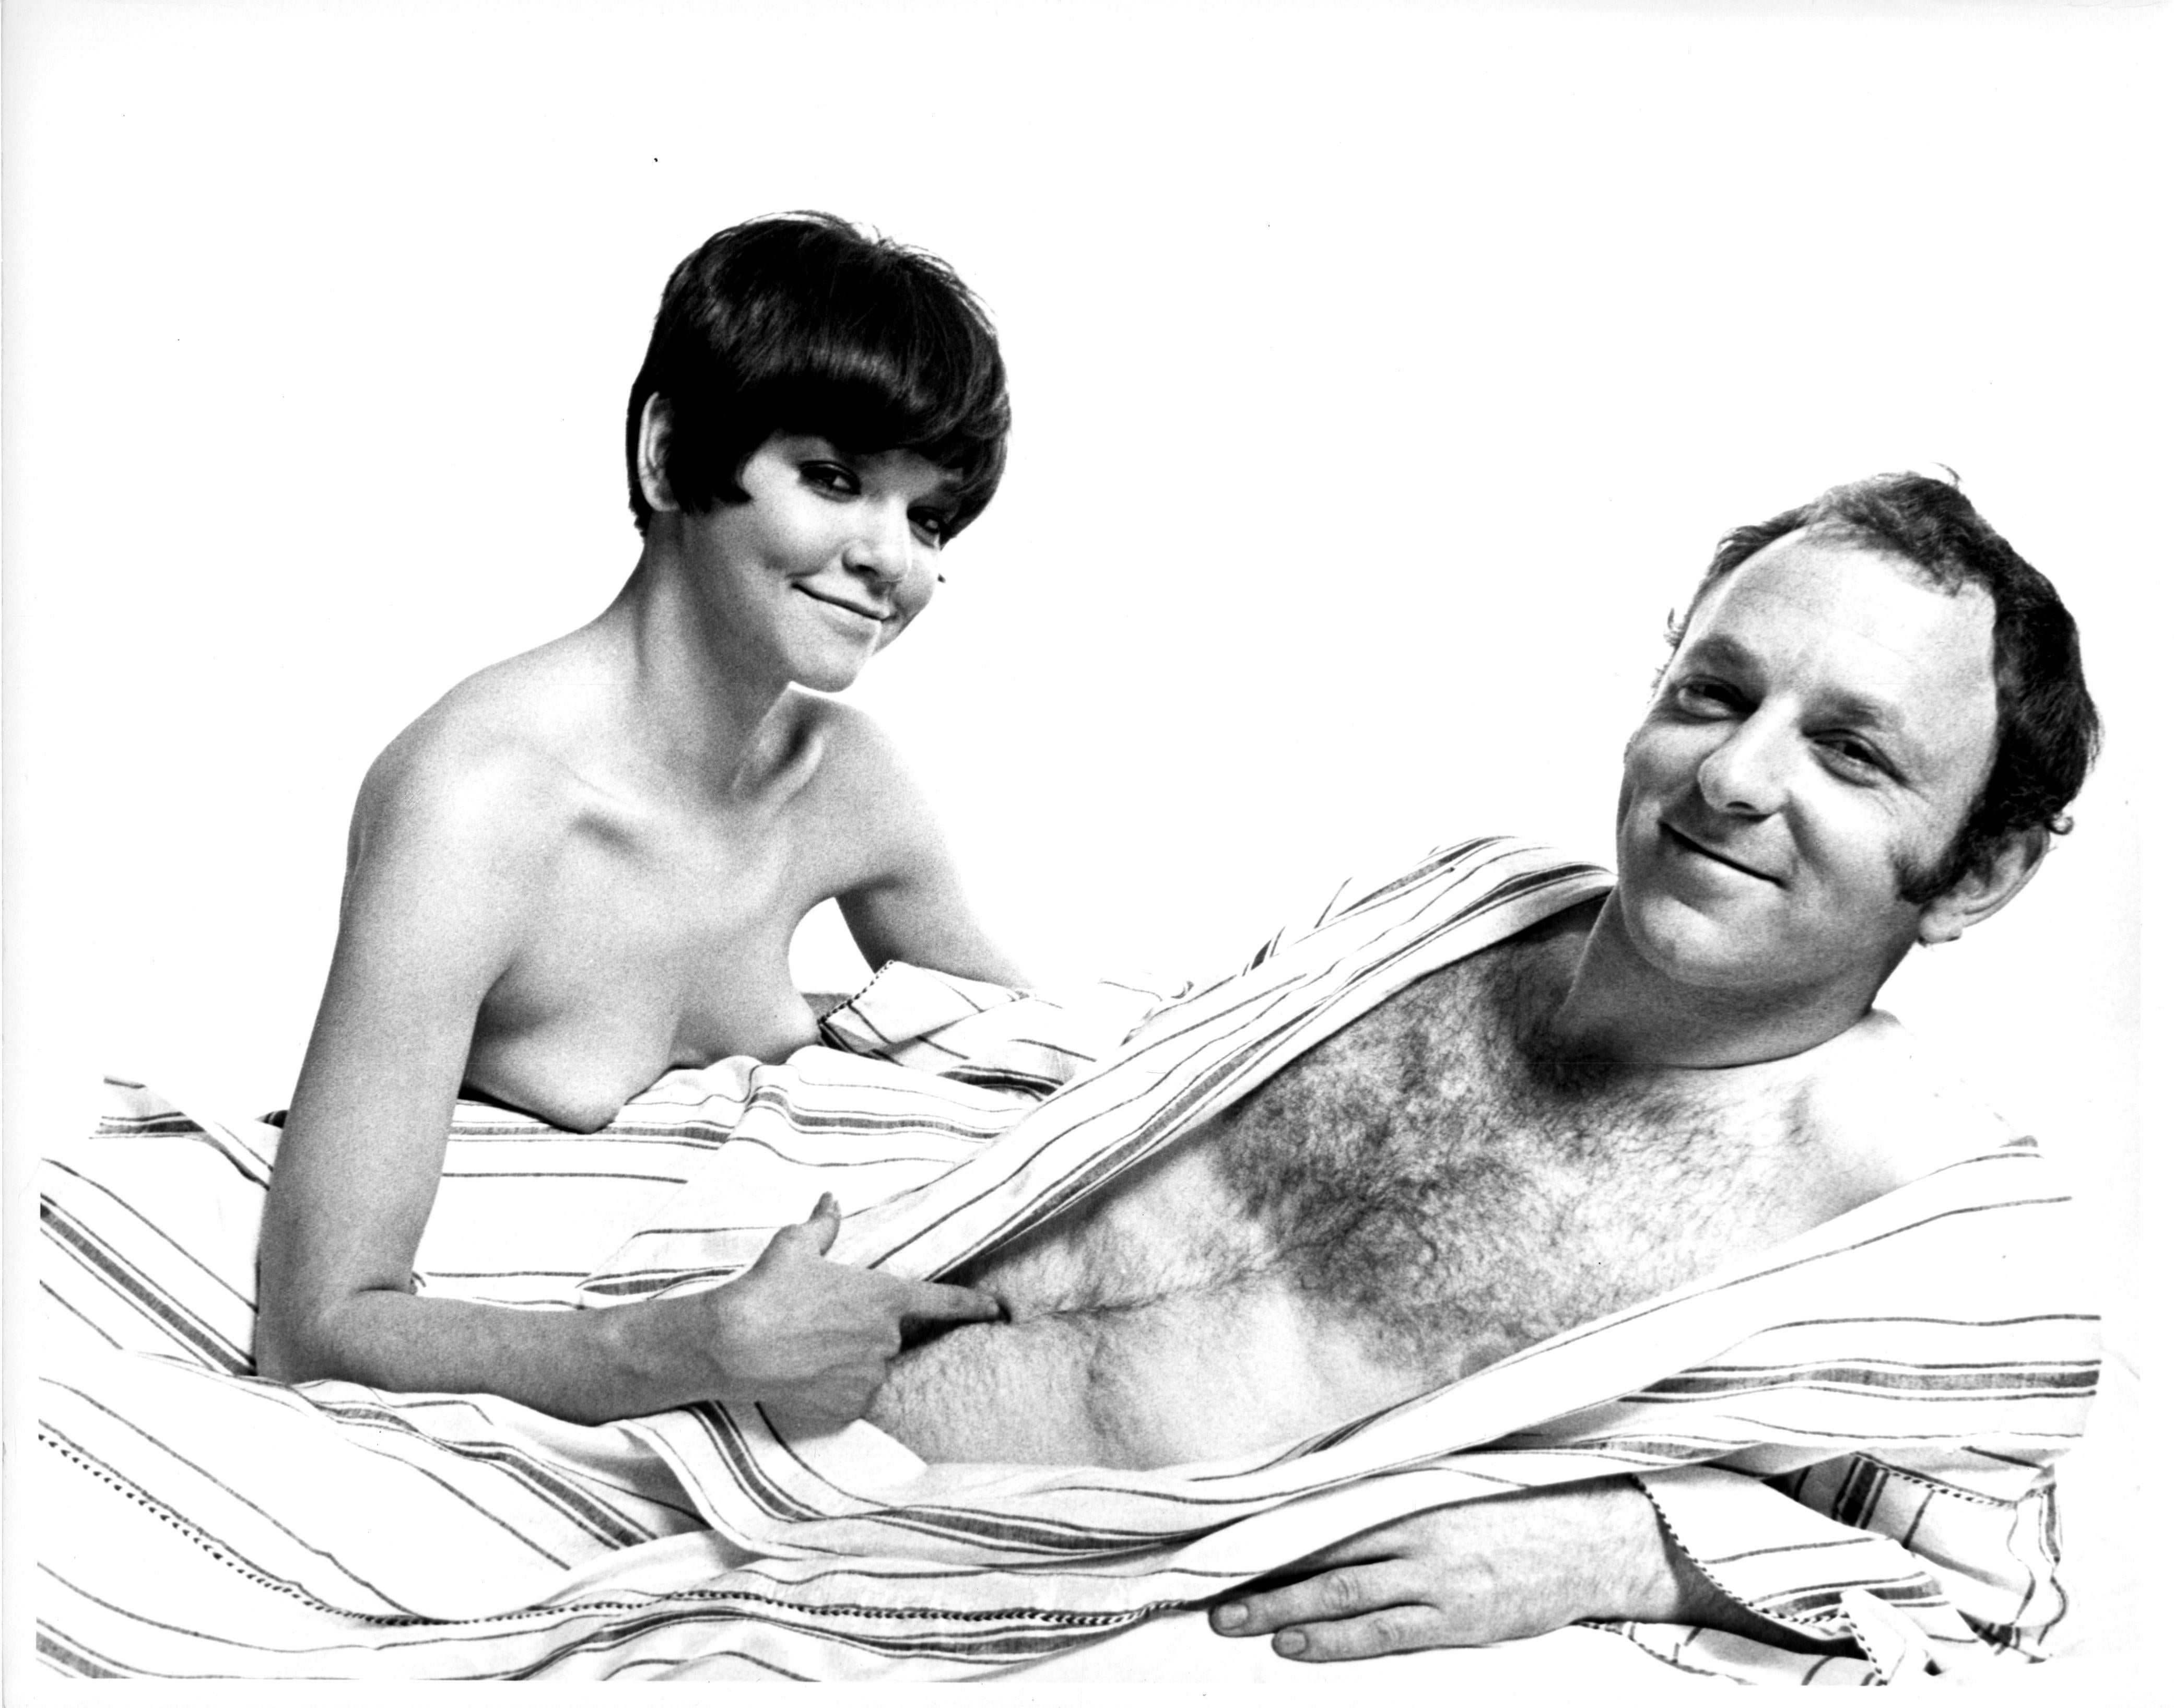 British Pop Artist Gerald Laing and wife photographed nude